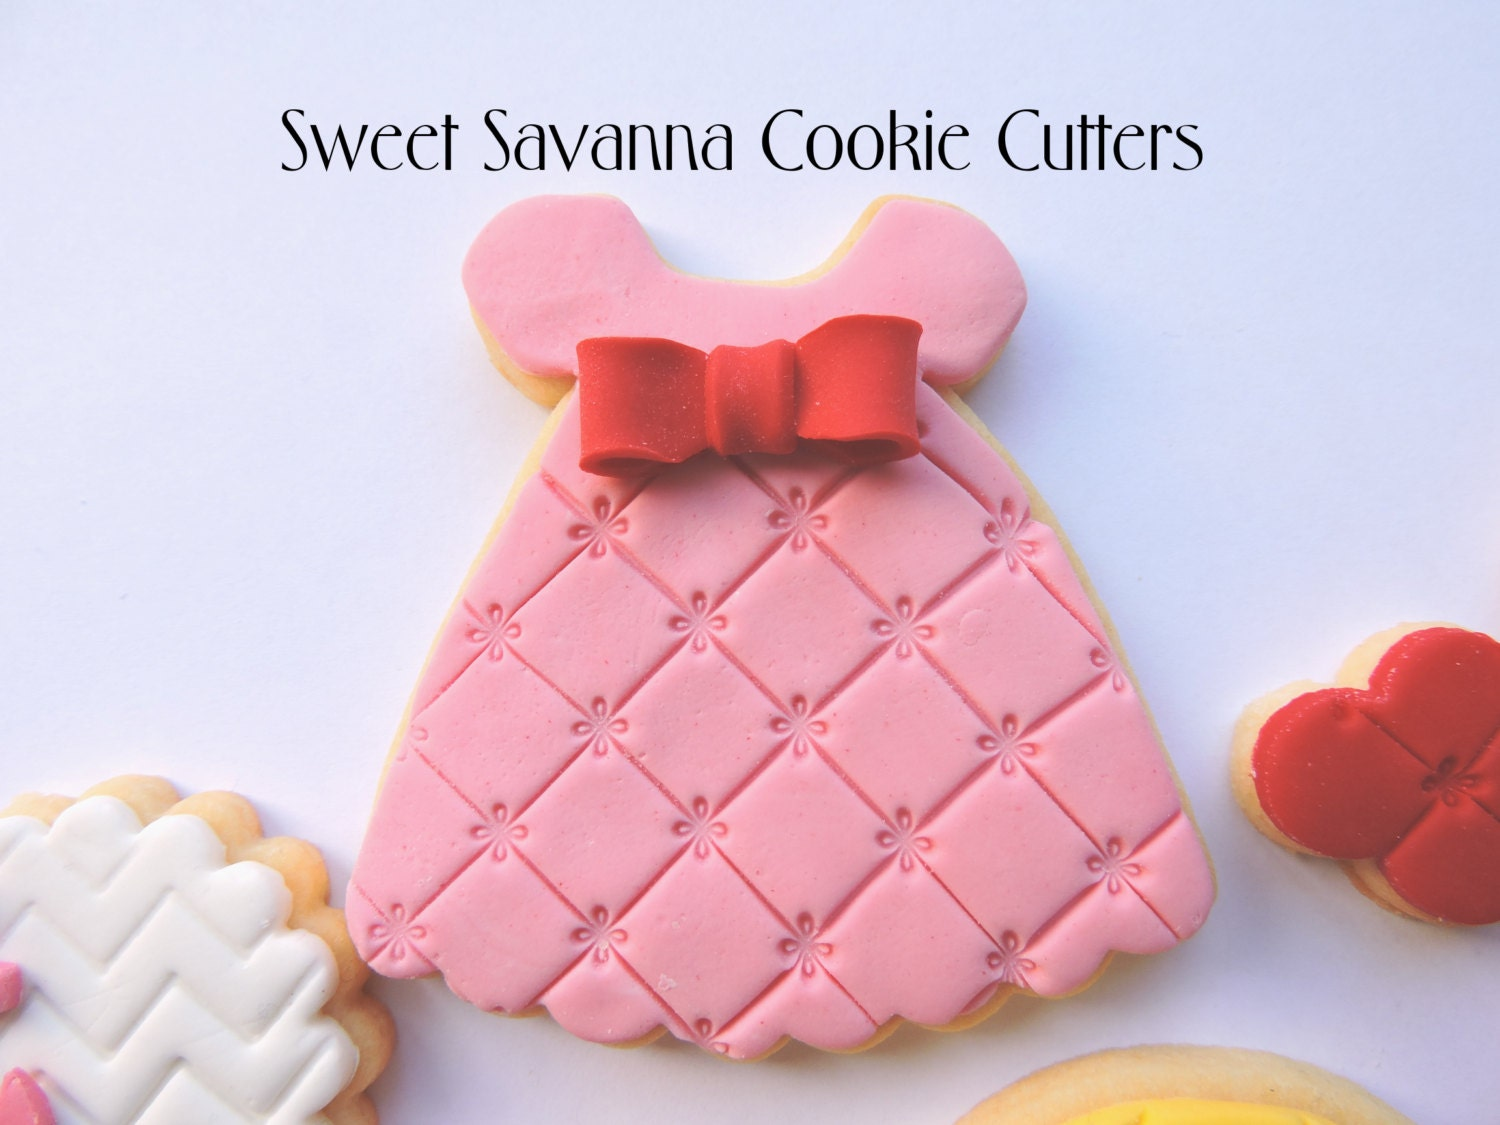 Our Clothing cookie cutters collection has fashionable cutters to suit every occasion. Whether you're looking for lingerie, formal wear, beach gear, baby clothes, athletic apparel or ethnic costumes, we've got the awesome apparel cookie cutters you need to outfit your cookie cutter collection.